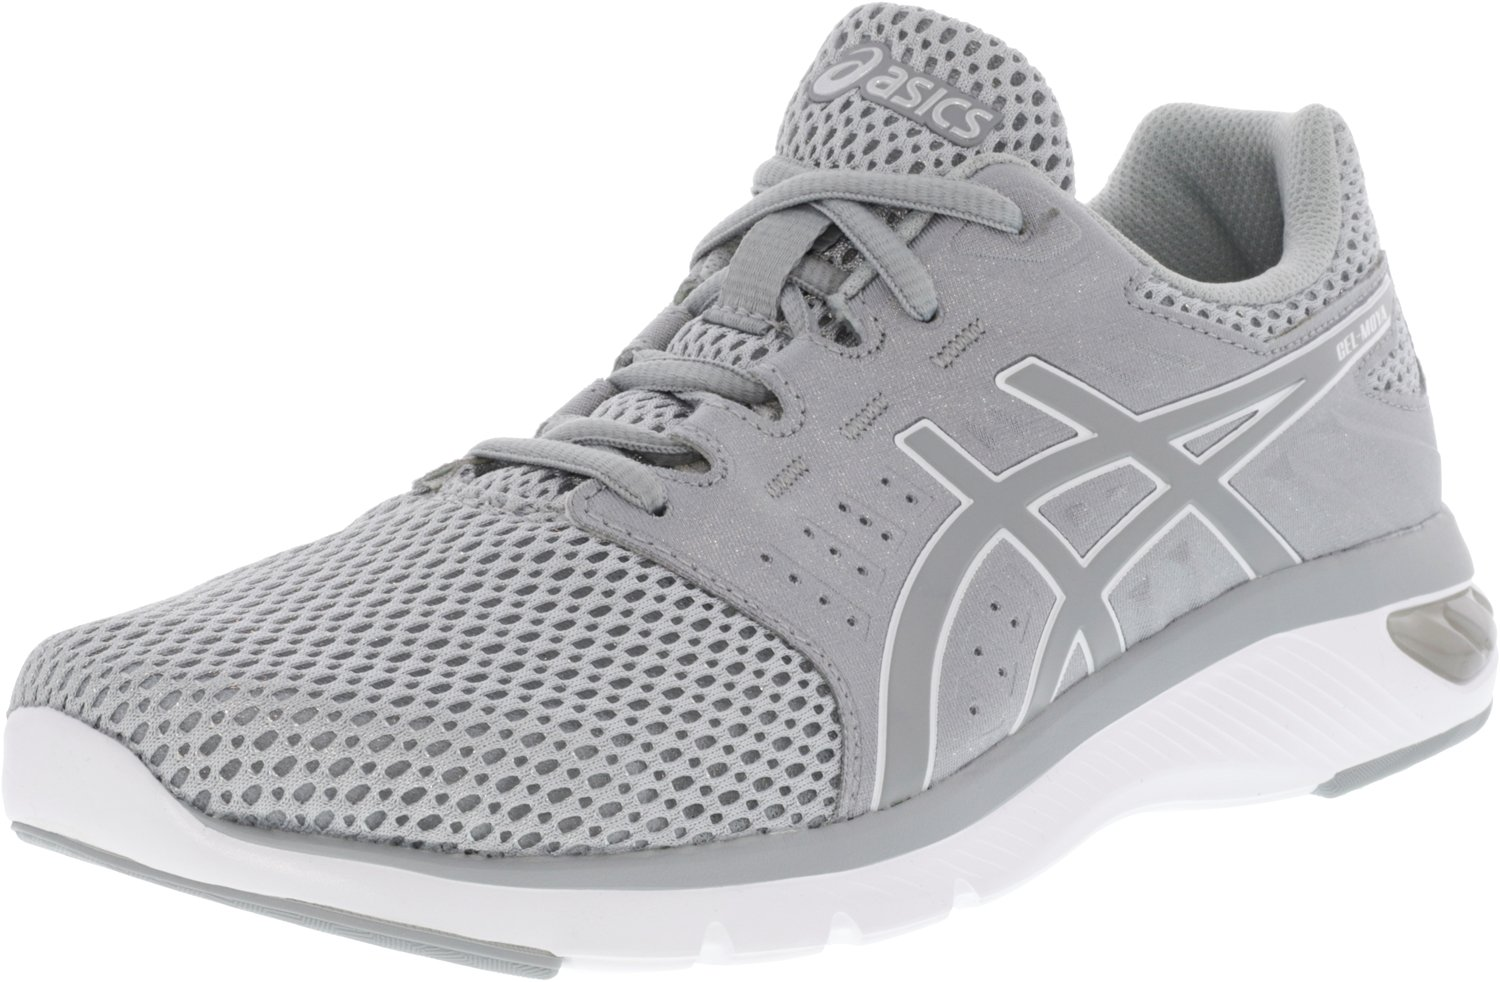 ASICS Women's Gel-Moya Ankle-High Running Shoe B077CC8HJ8 10 B(M) US|Grey/Silver